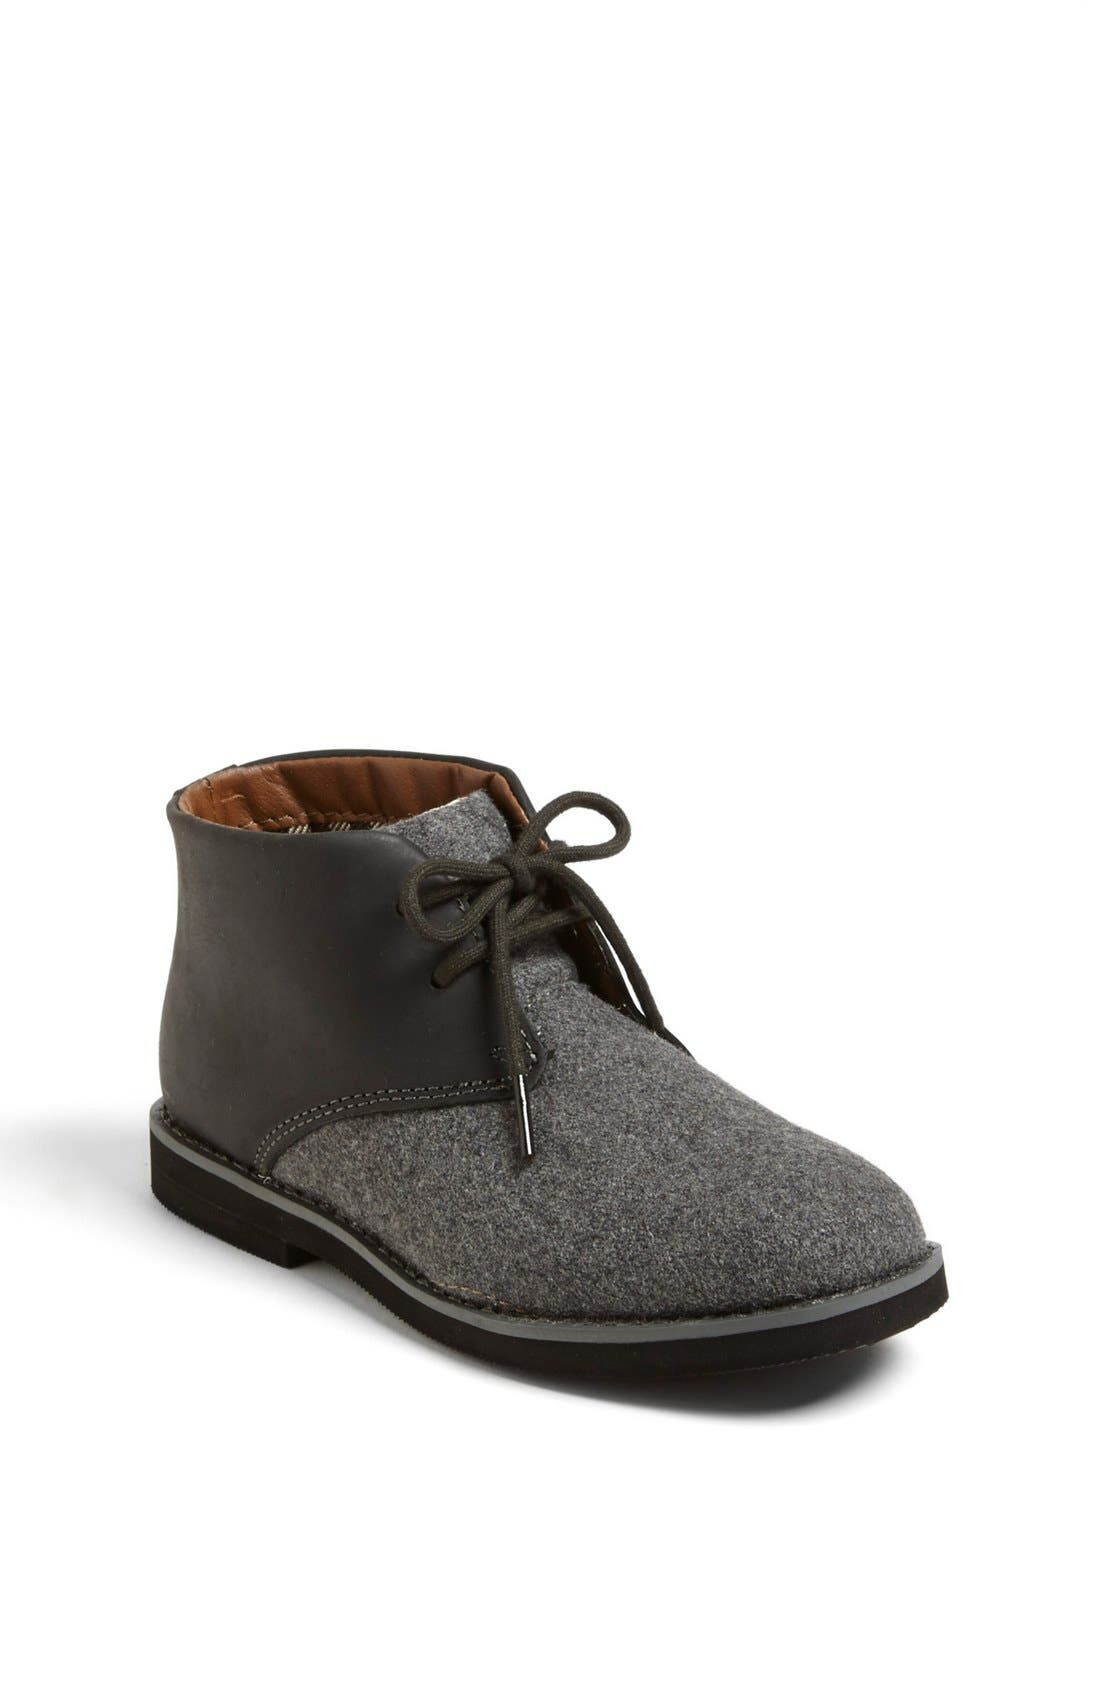 Main Image - Florsheim 'Doon' Chukka Boot (Toddler, Little Kid & Big Kid)